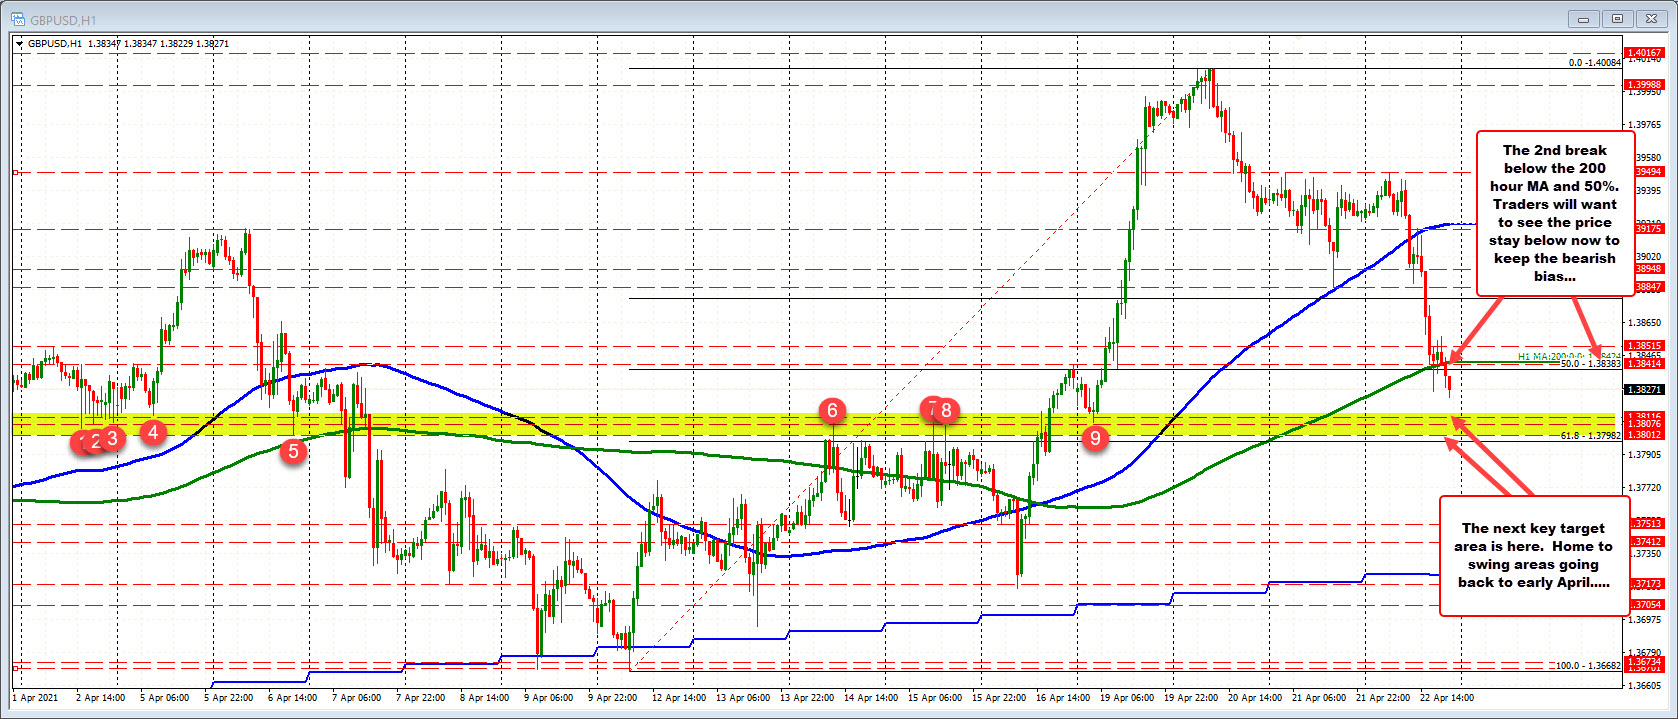 GBPUSD trades to a new session low